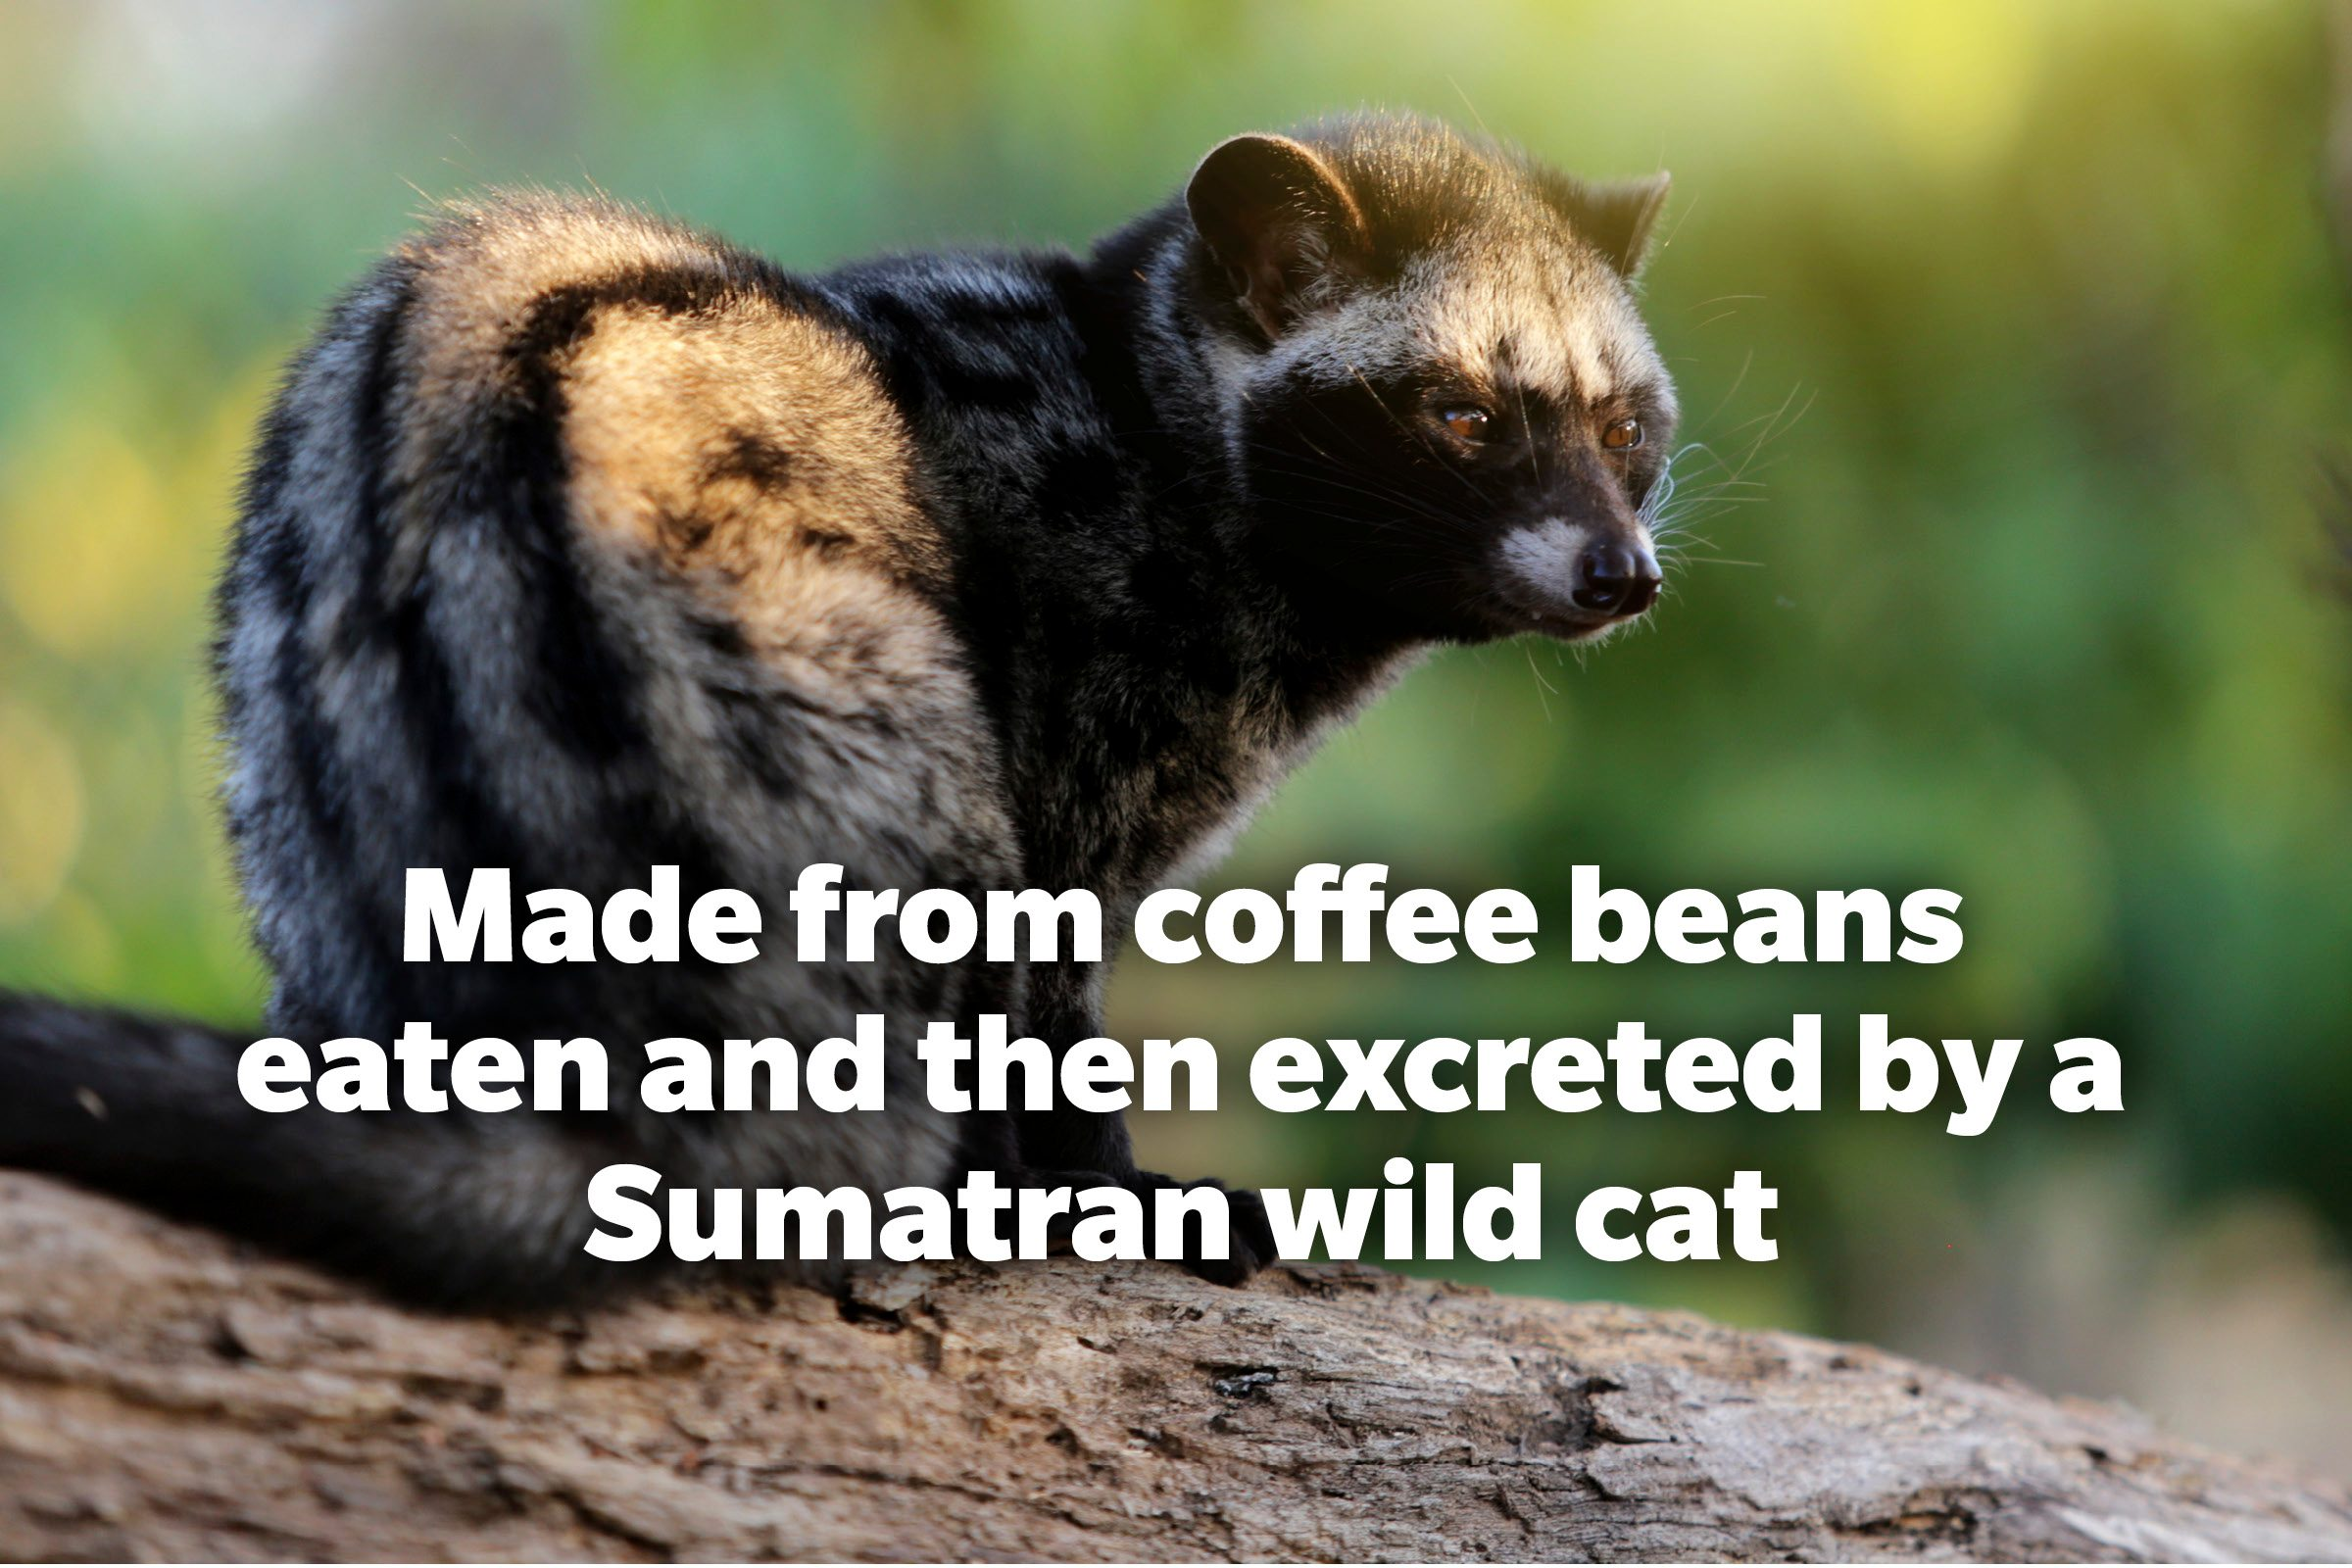 Made from coffee beans eaten and excreted by a Sumatran wild cat